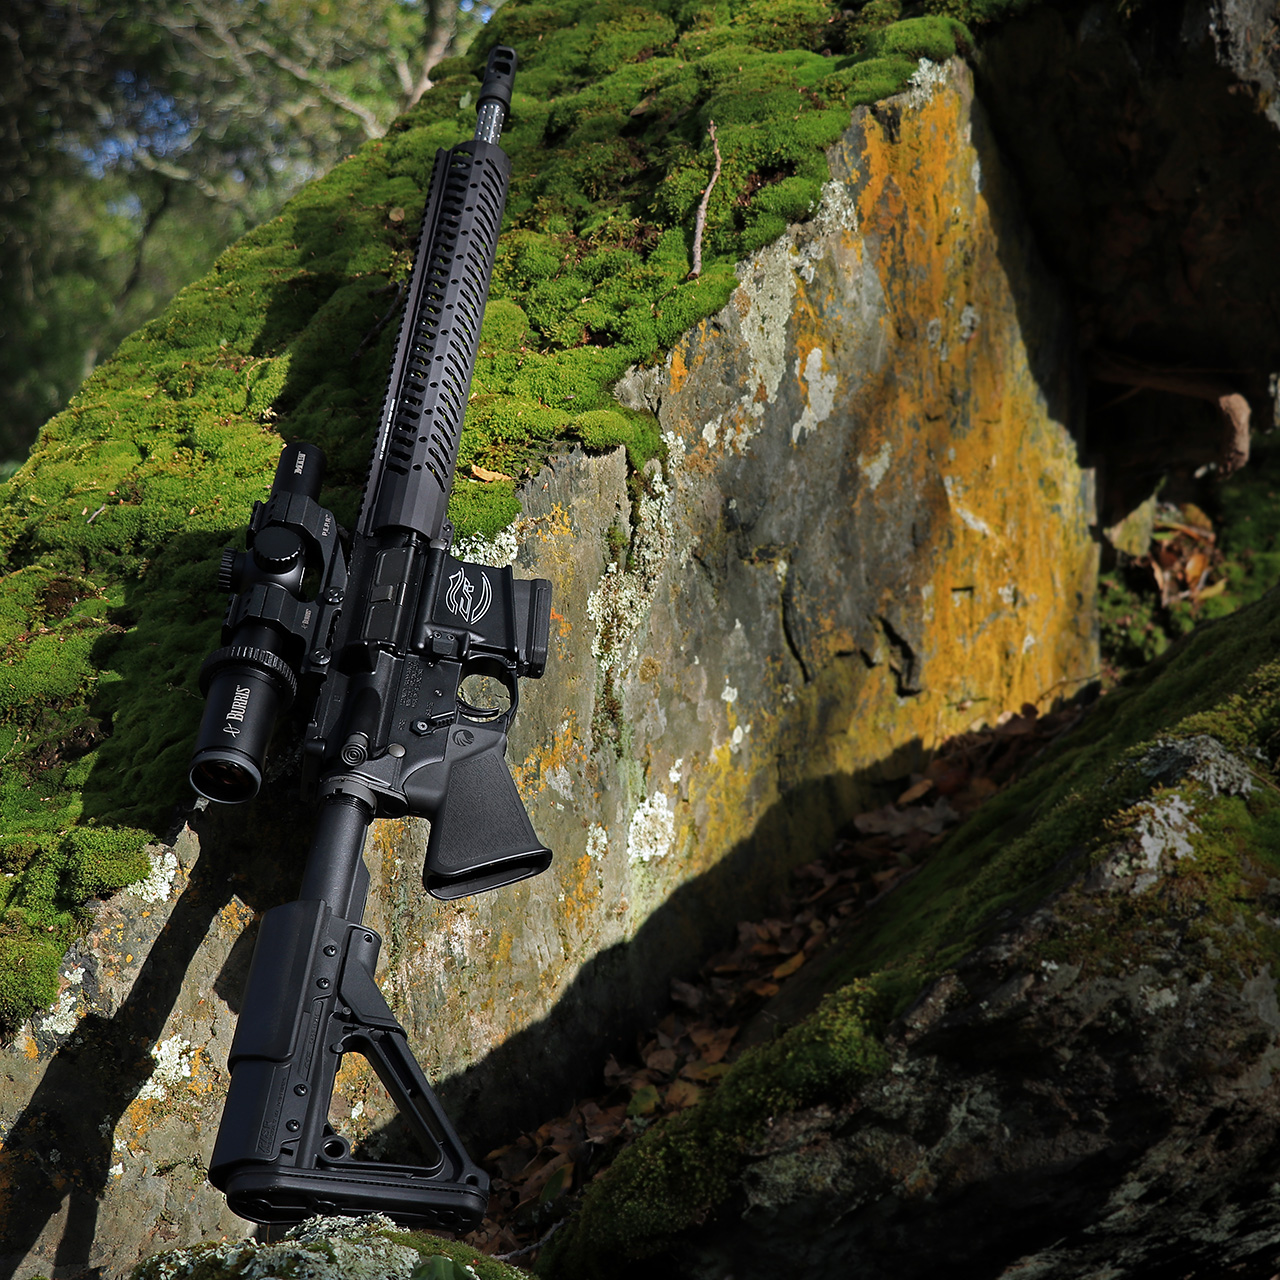 Sparrow Dynamics Featureless Colt Competition Rifle on moss rock